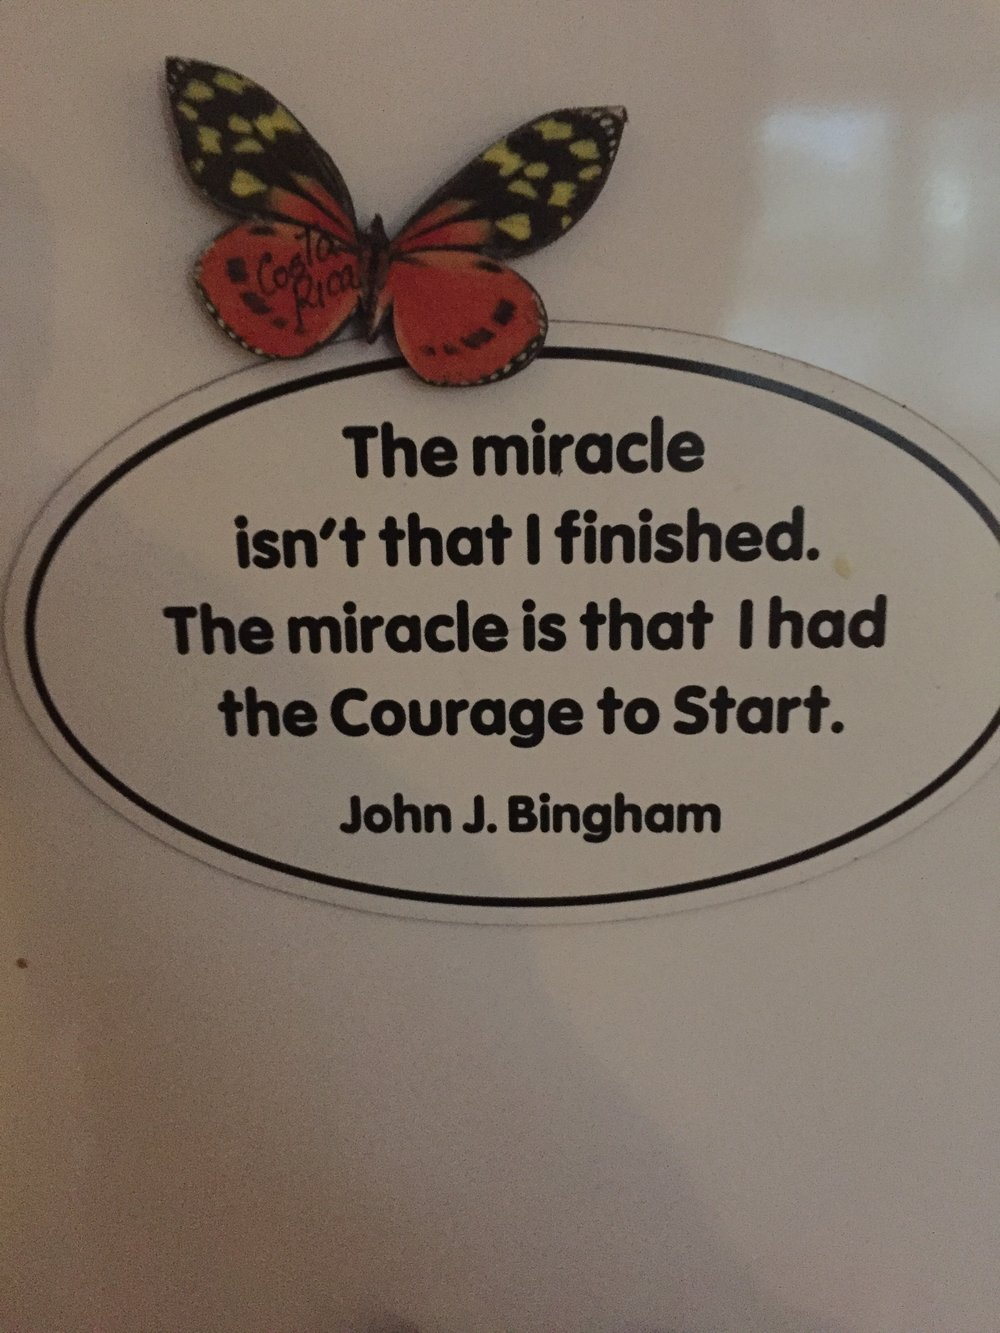 """The miracle isn't that I finished.  The miracle is that I had the Courage to Start.  -John J. Bingham."""